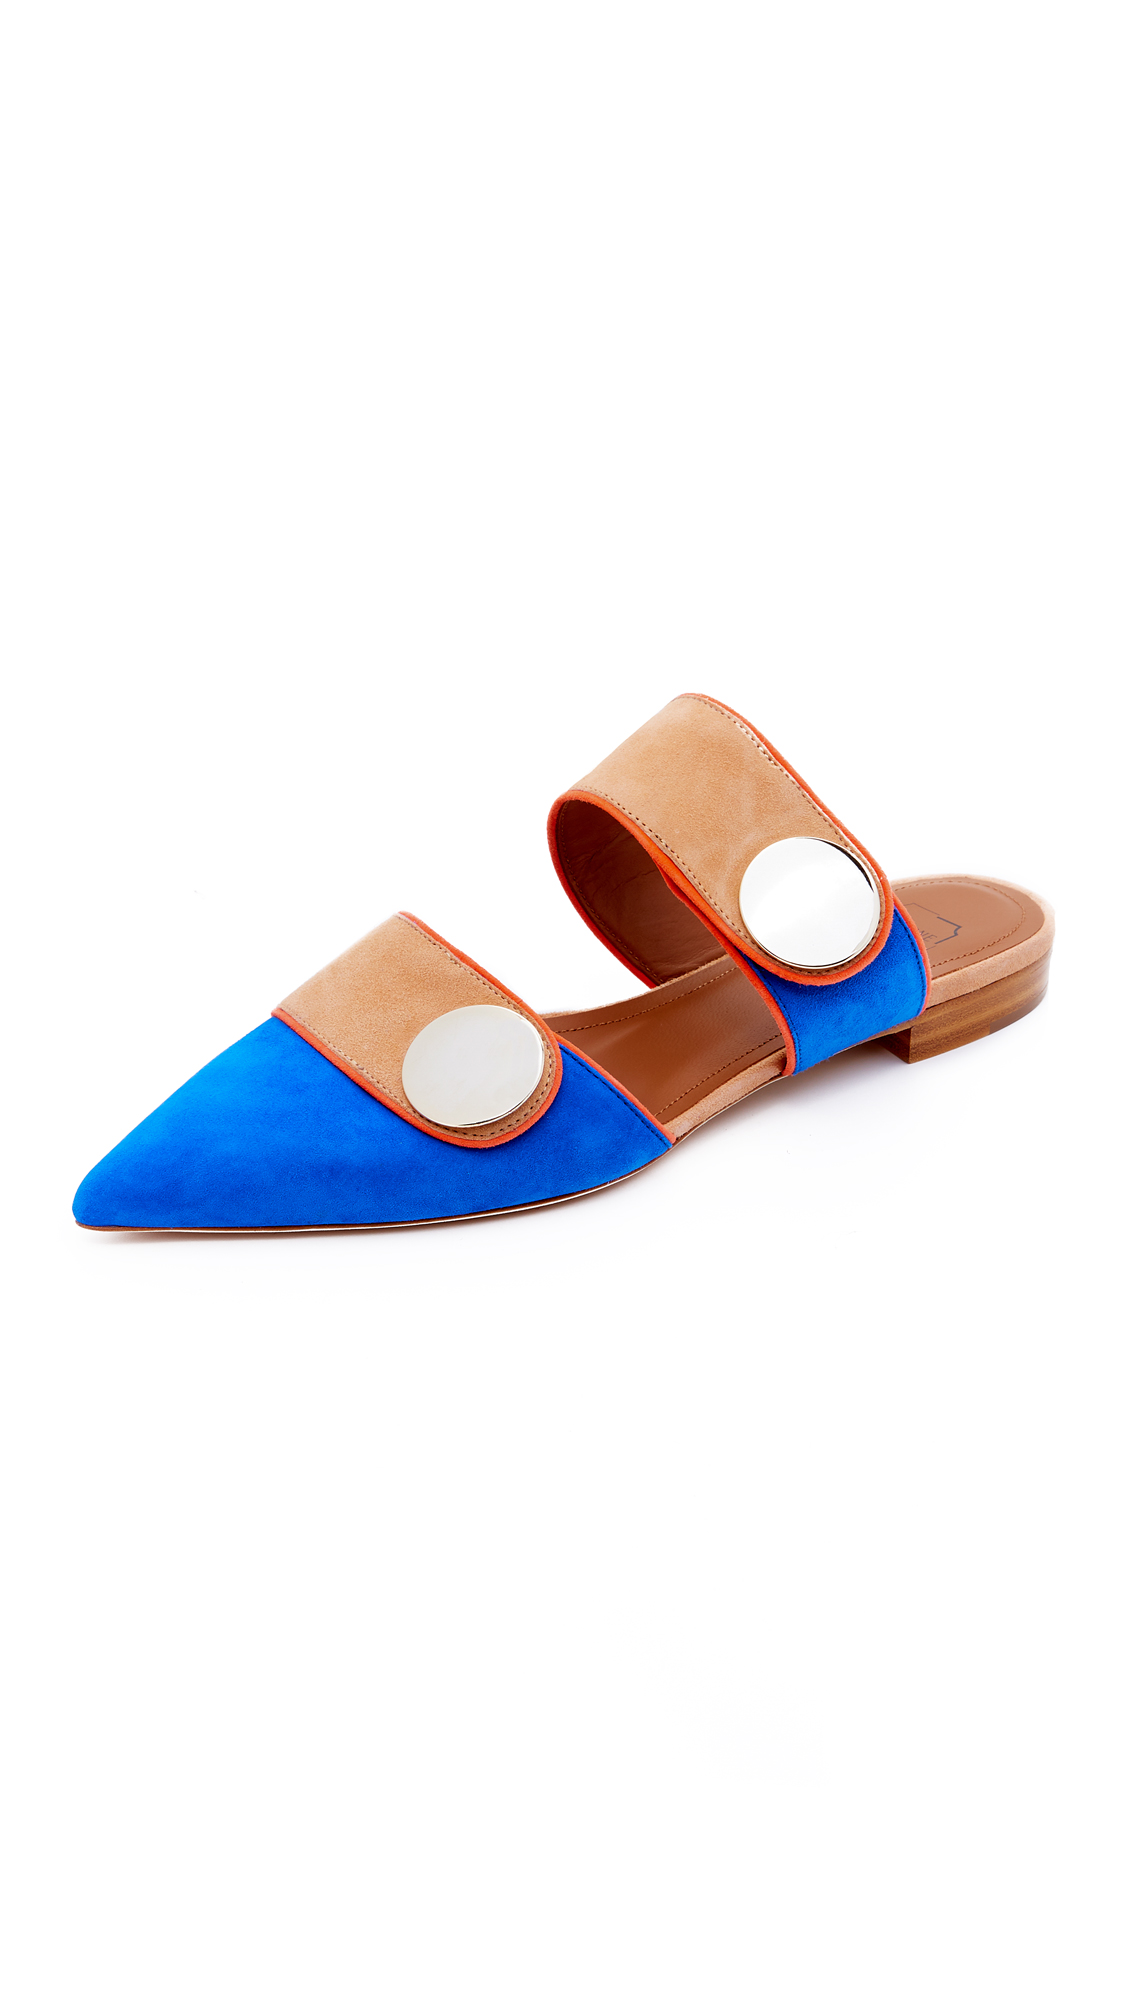 Malone Souliers x Roksanda Lee Slip On Flats - Blue/Peach Pie/Orange